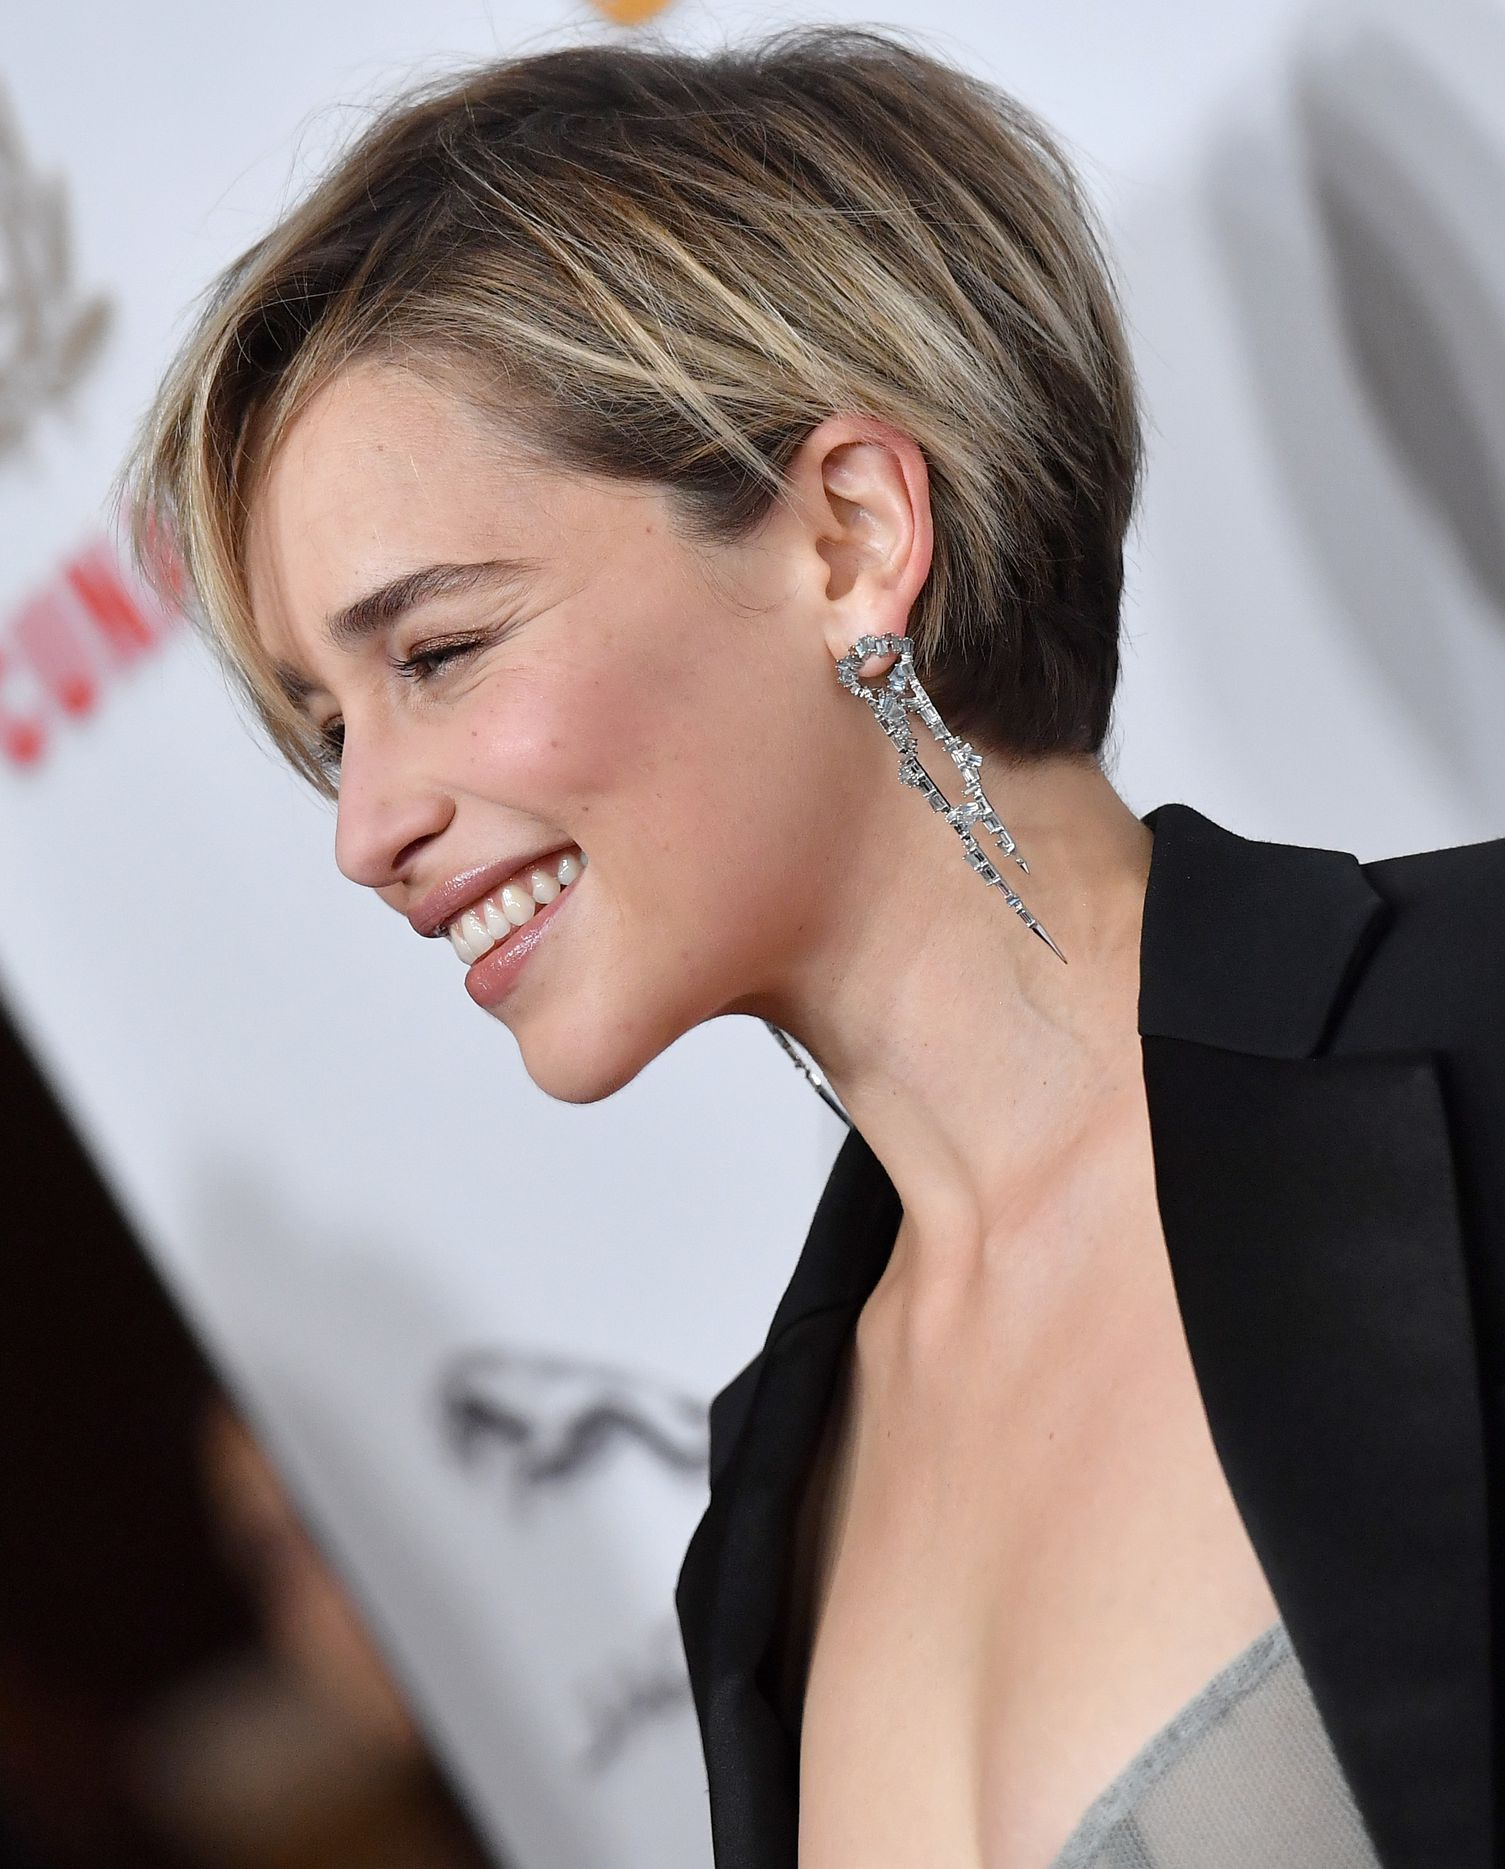 100+ Stylish Short Hairstyles and Haircut Inspiration